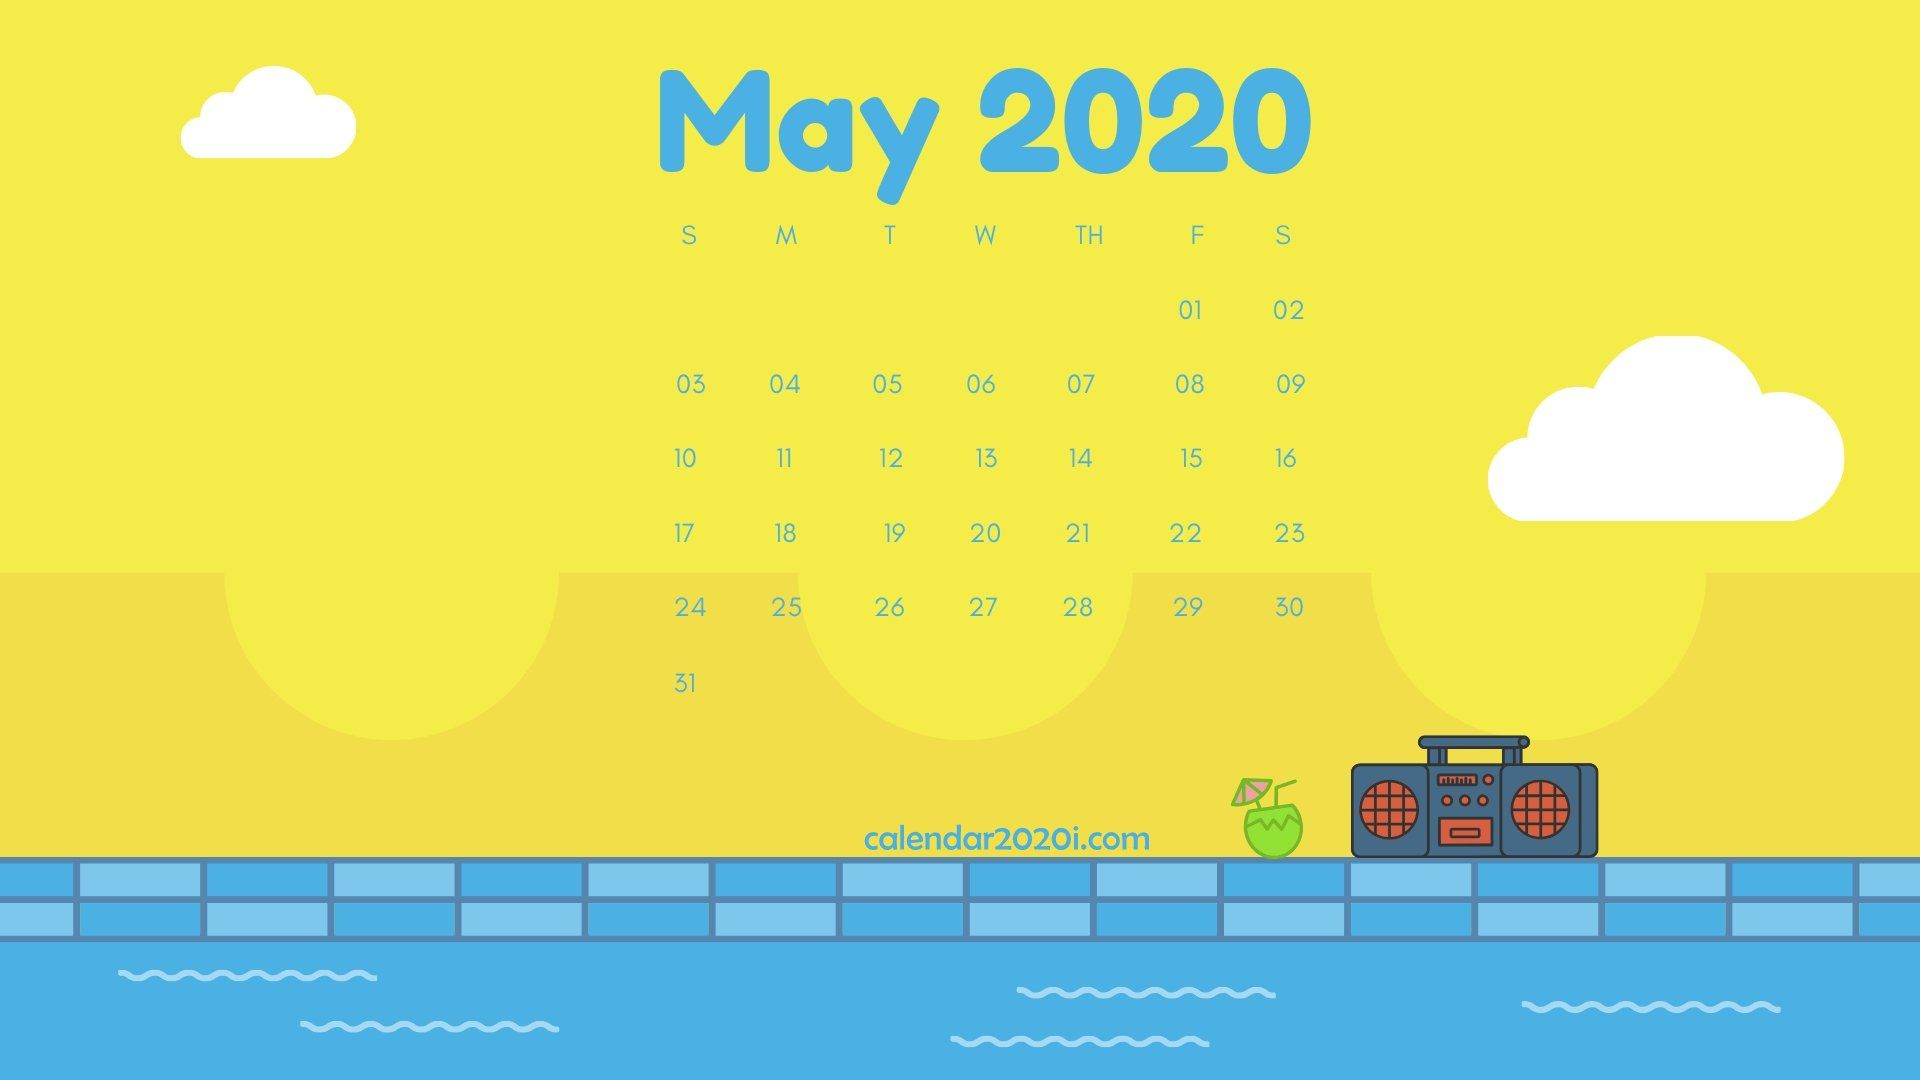 Cute May 2020 Calendar Wallpaper For Desk Floral Designs 1920x1080